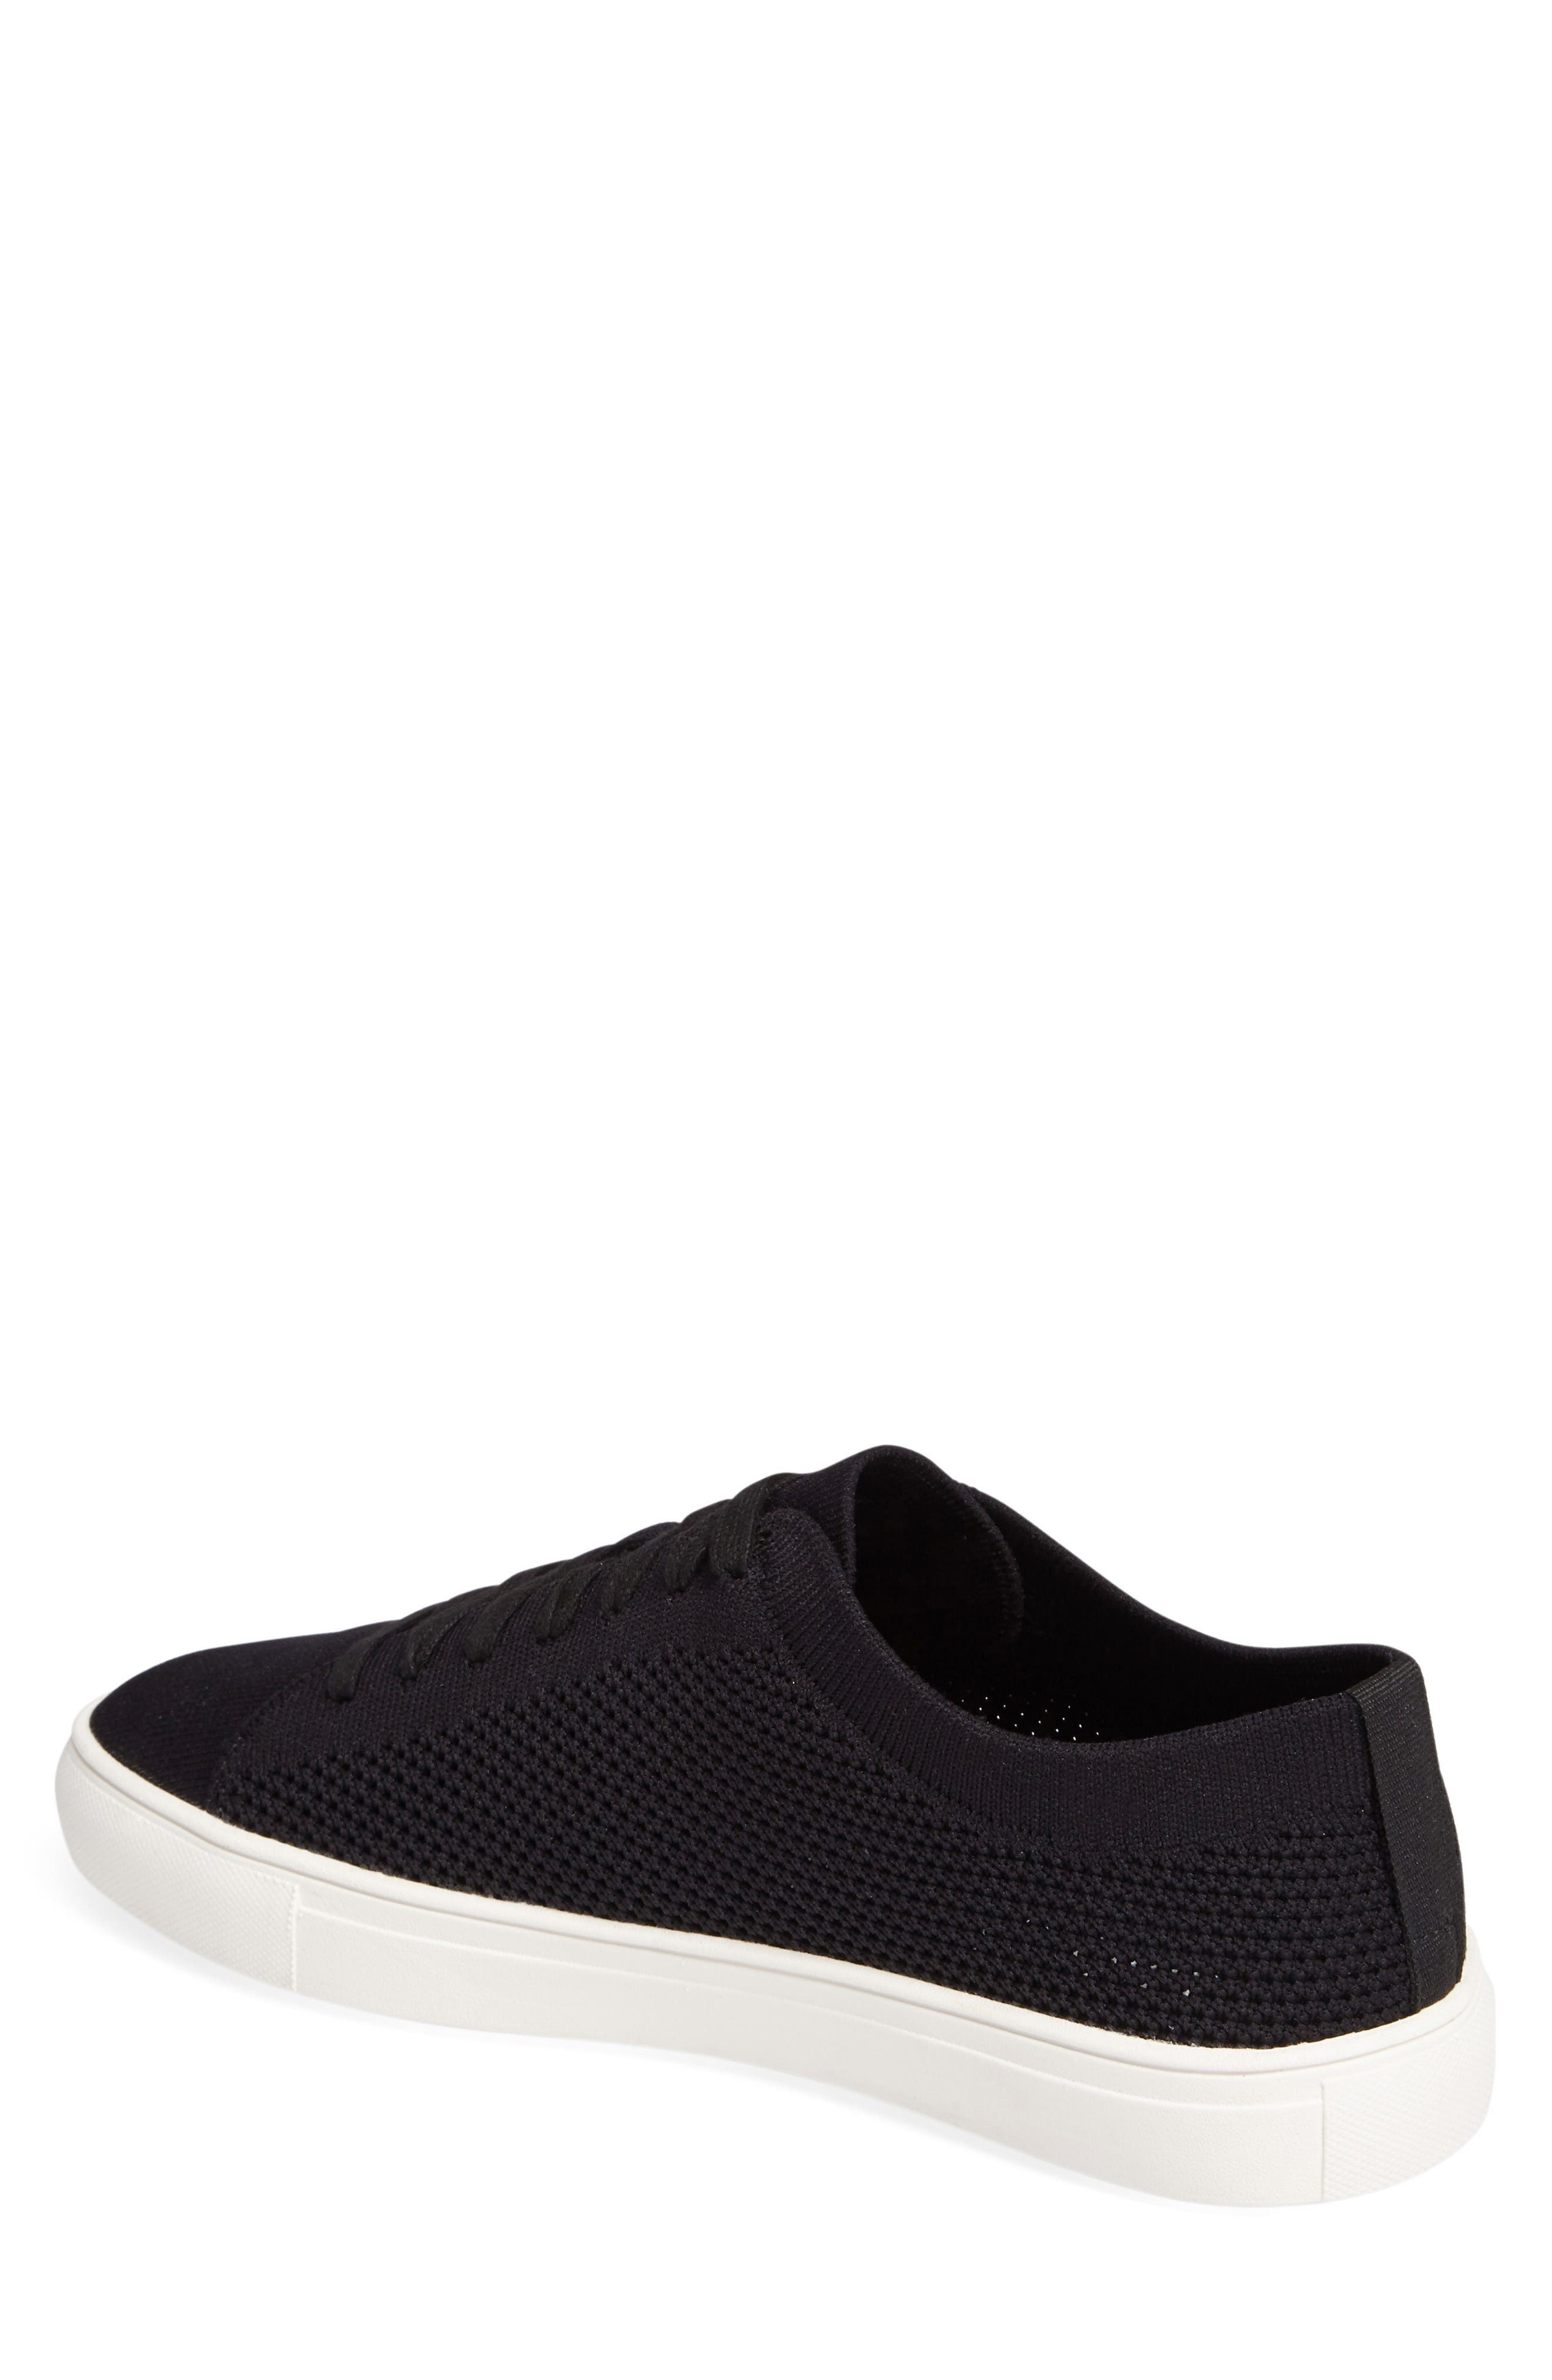 Alternate Image 2  - Reaction Kenneth Cole On the Road Woven Sneaker (Men)